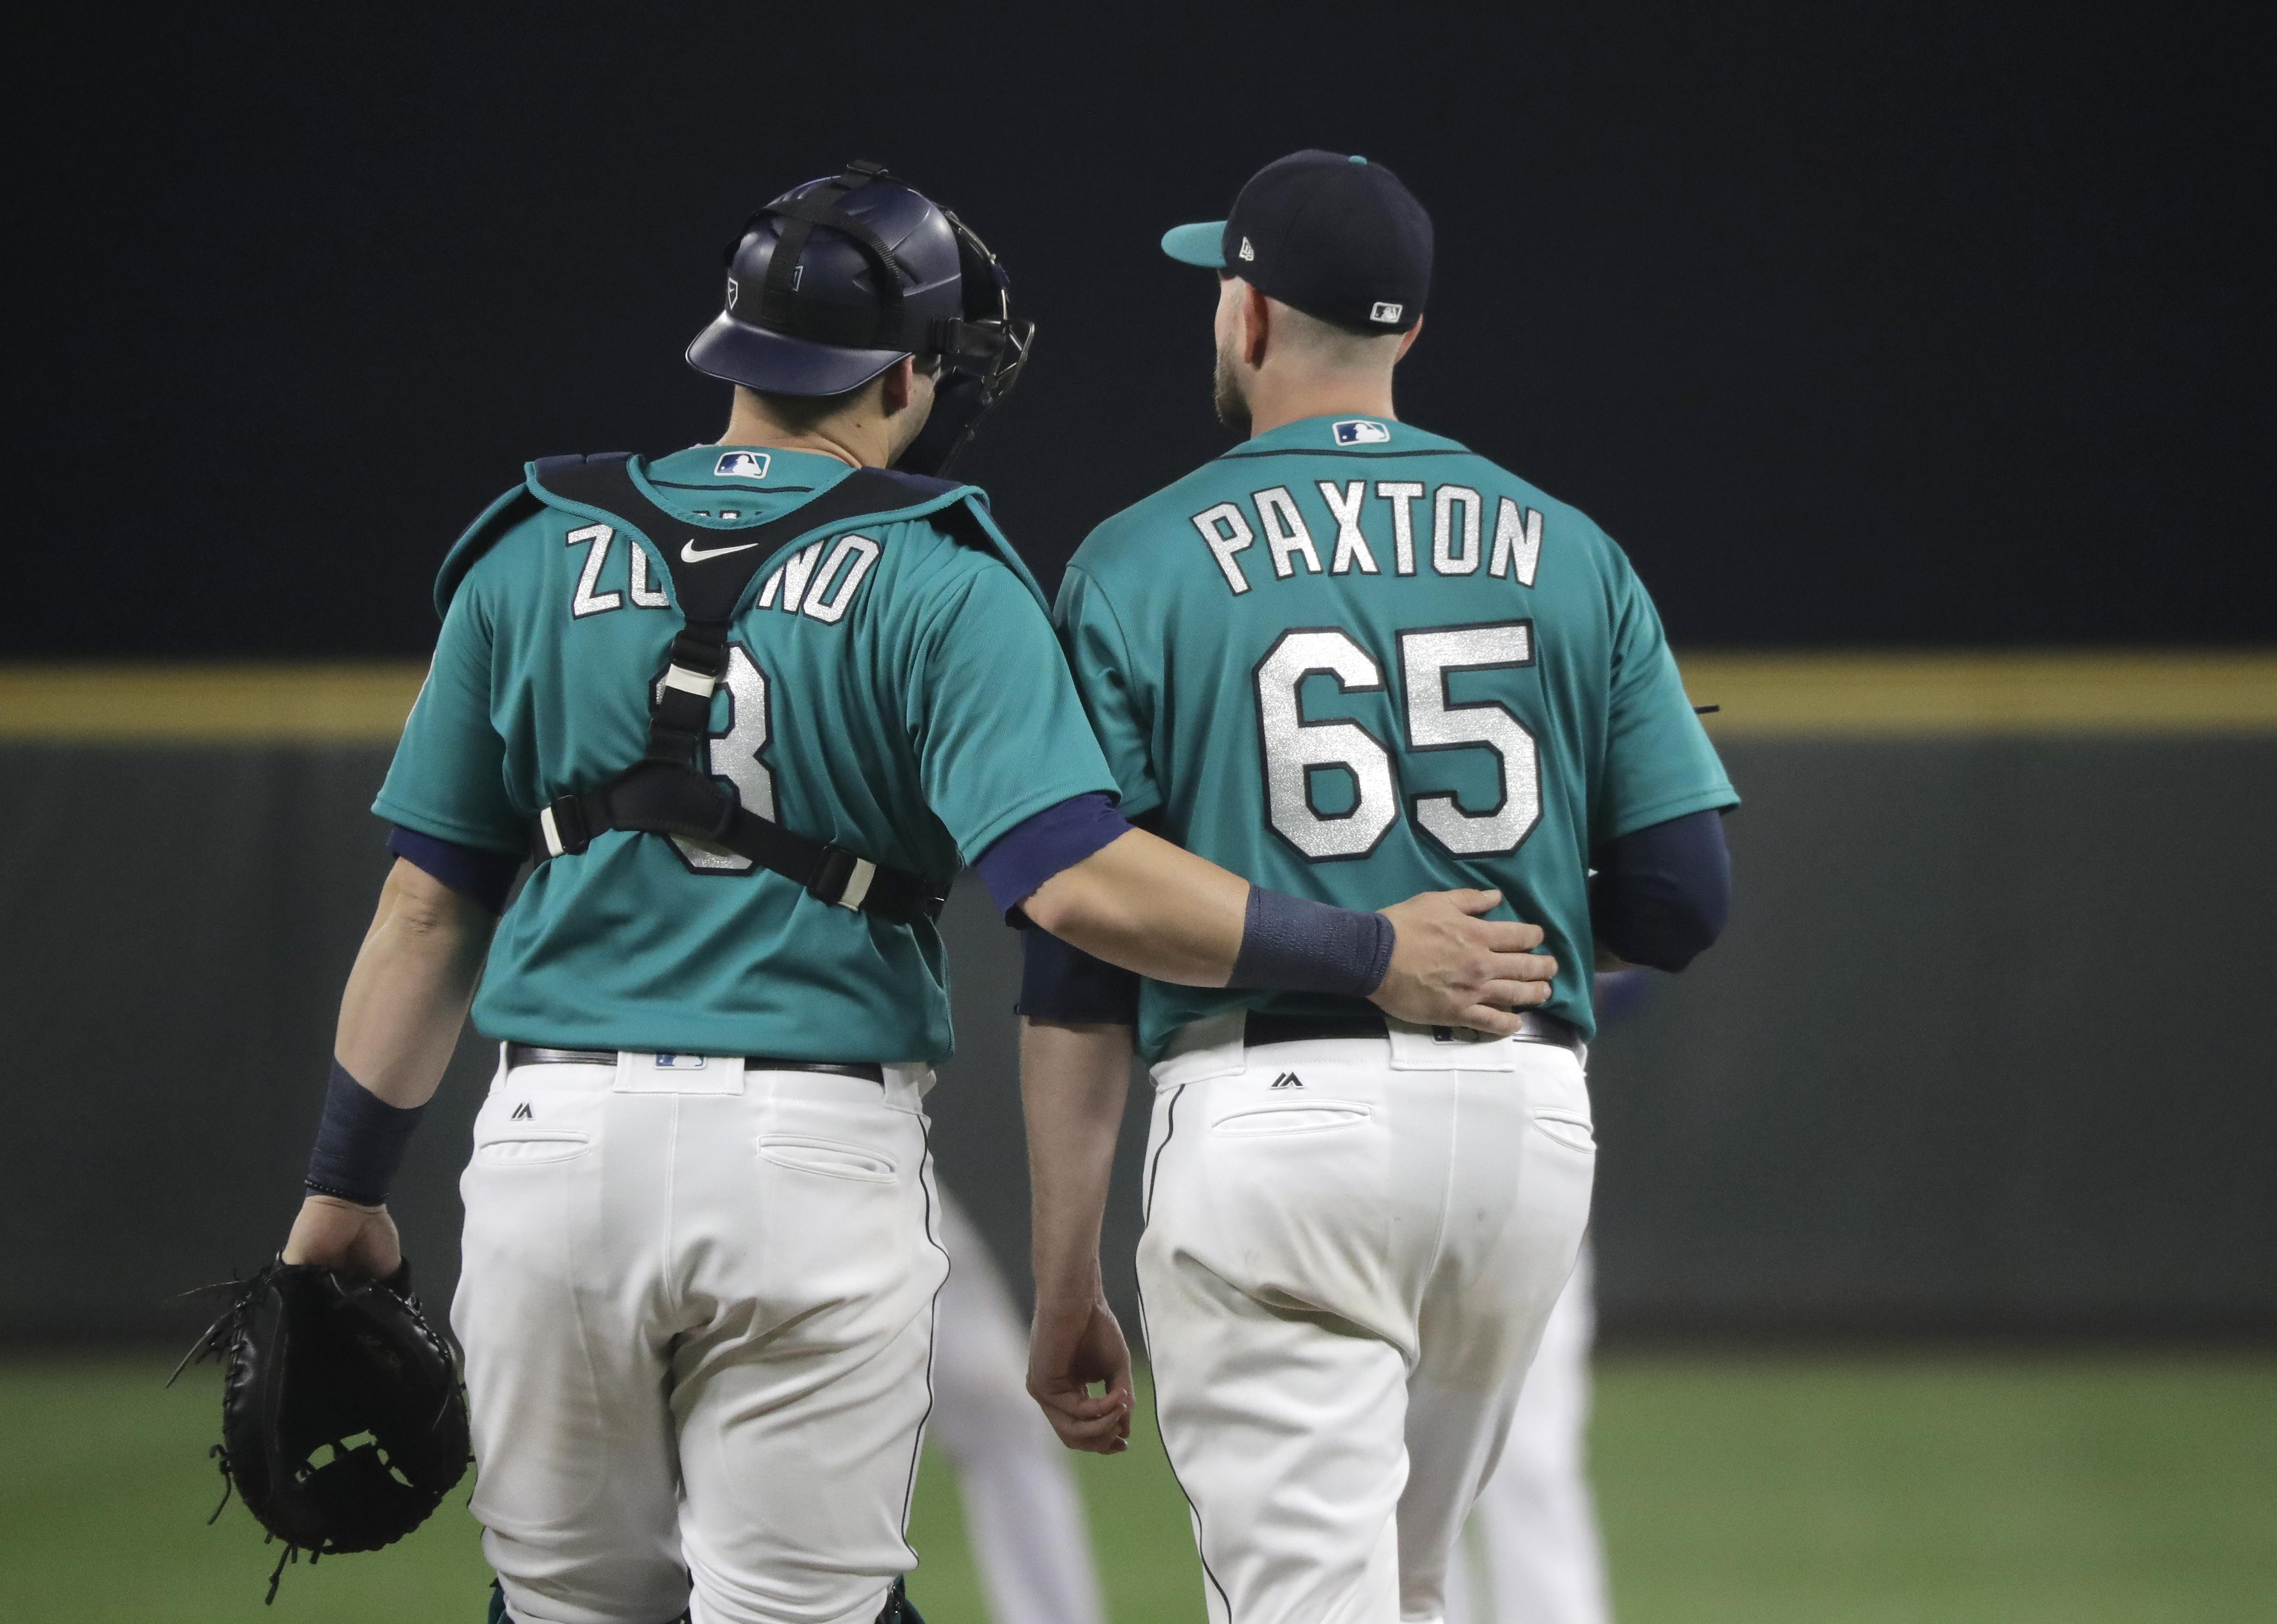 ba1fd9090 Seattle Mariners starting pitcher James Paxton walks with catcher Mike  Zunino at the start of the